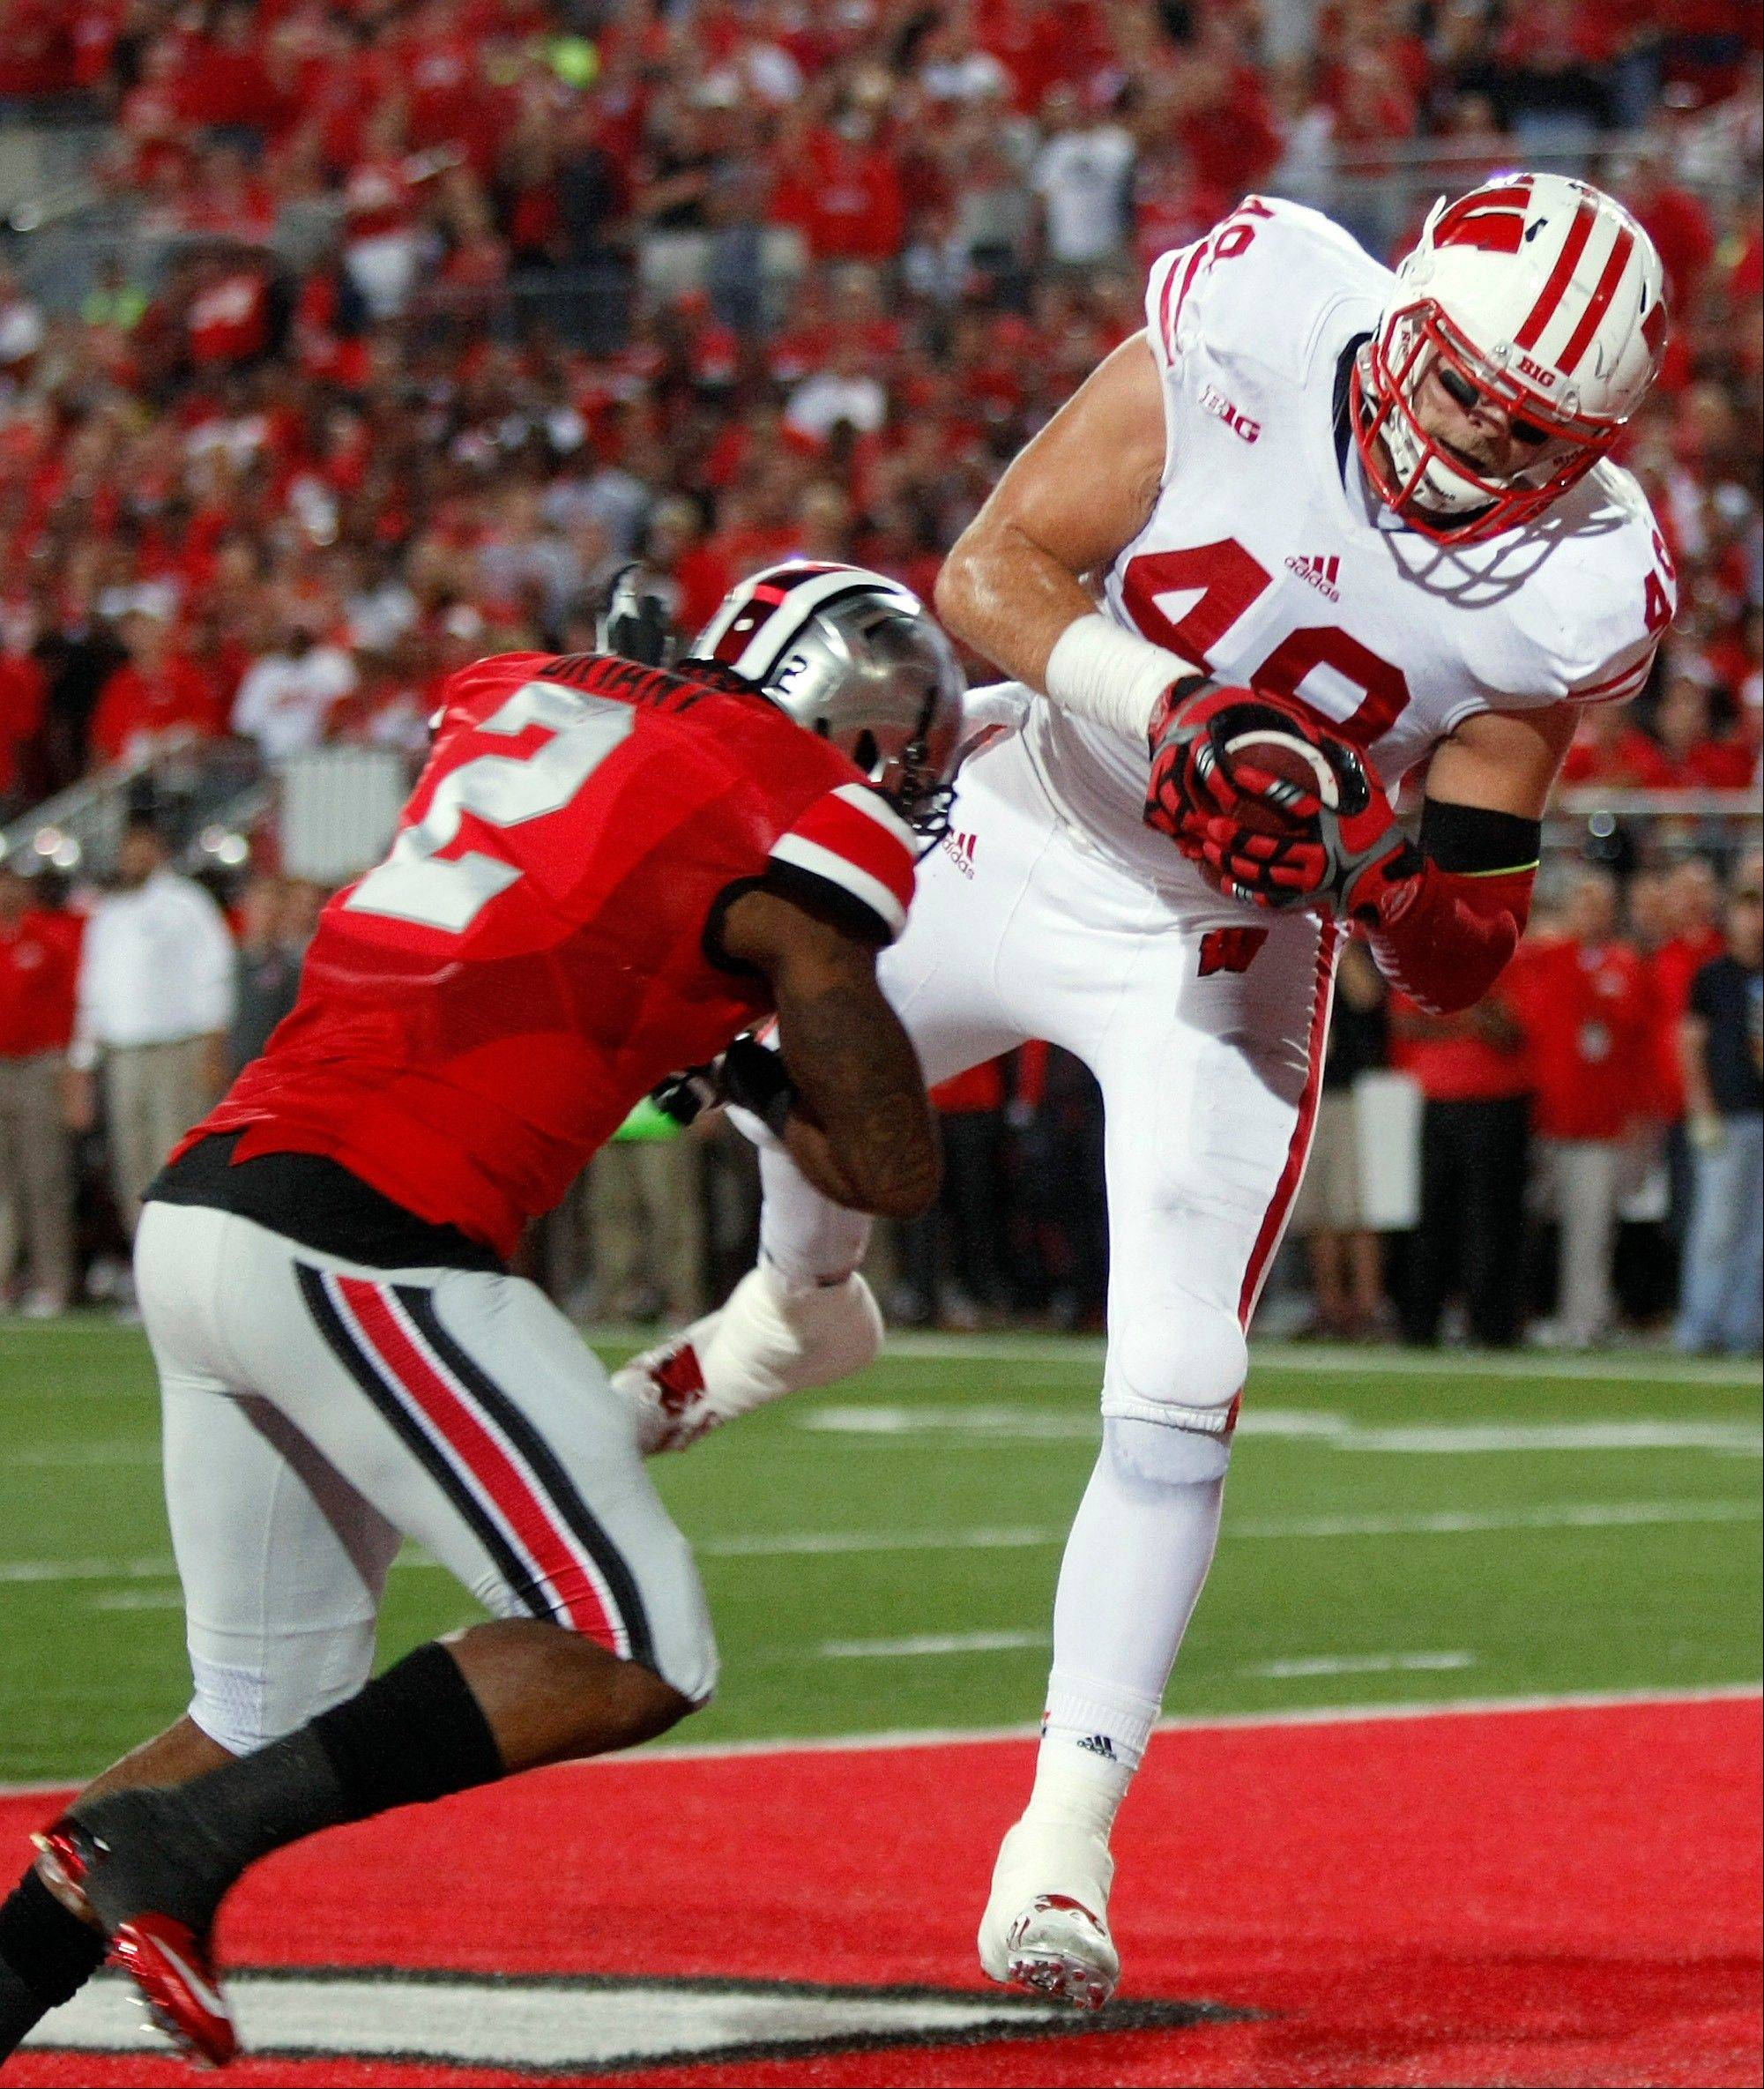 Wisconsin tight end Sam Arnesen, right, catches a pass for a touchdown as Ohio State safety Christian Bryant defends during Saturday�s game in Columbus, Ohio. Bryant suffered a broken ankle late in the game and is out for rest of the year.